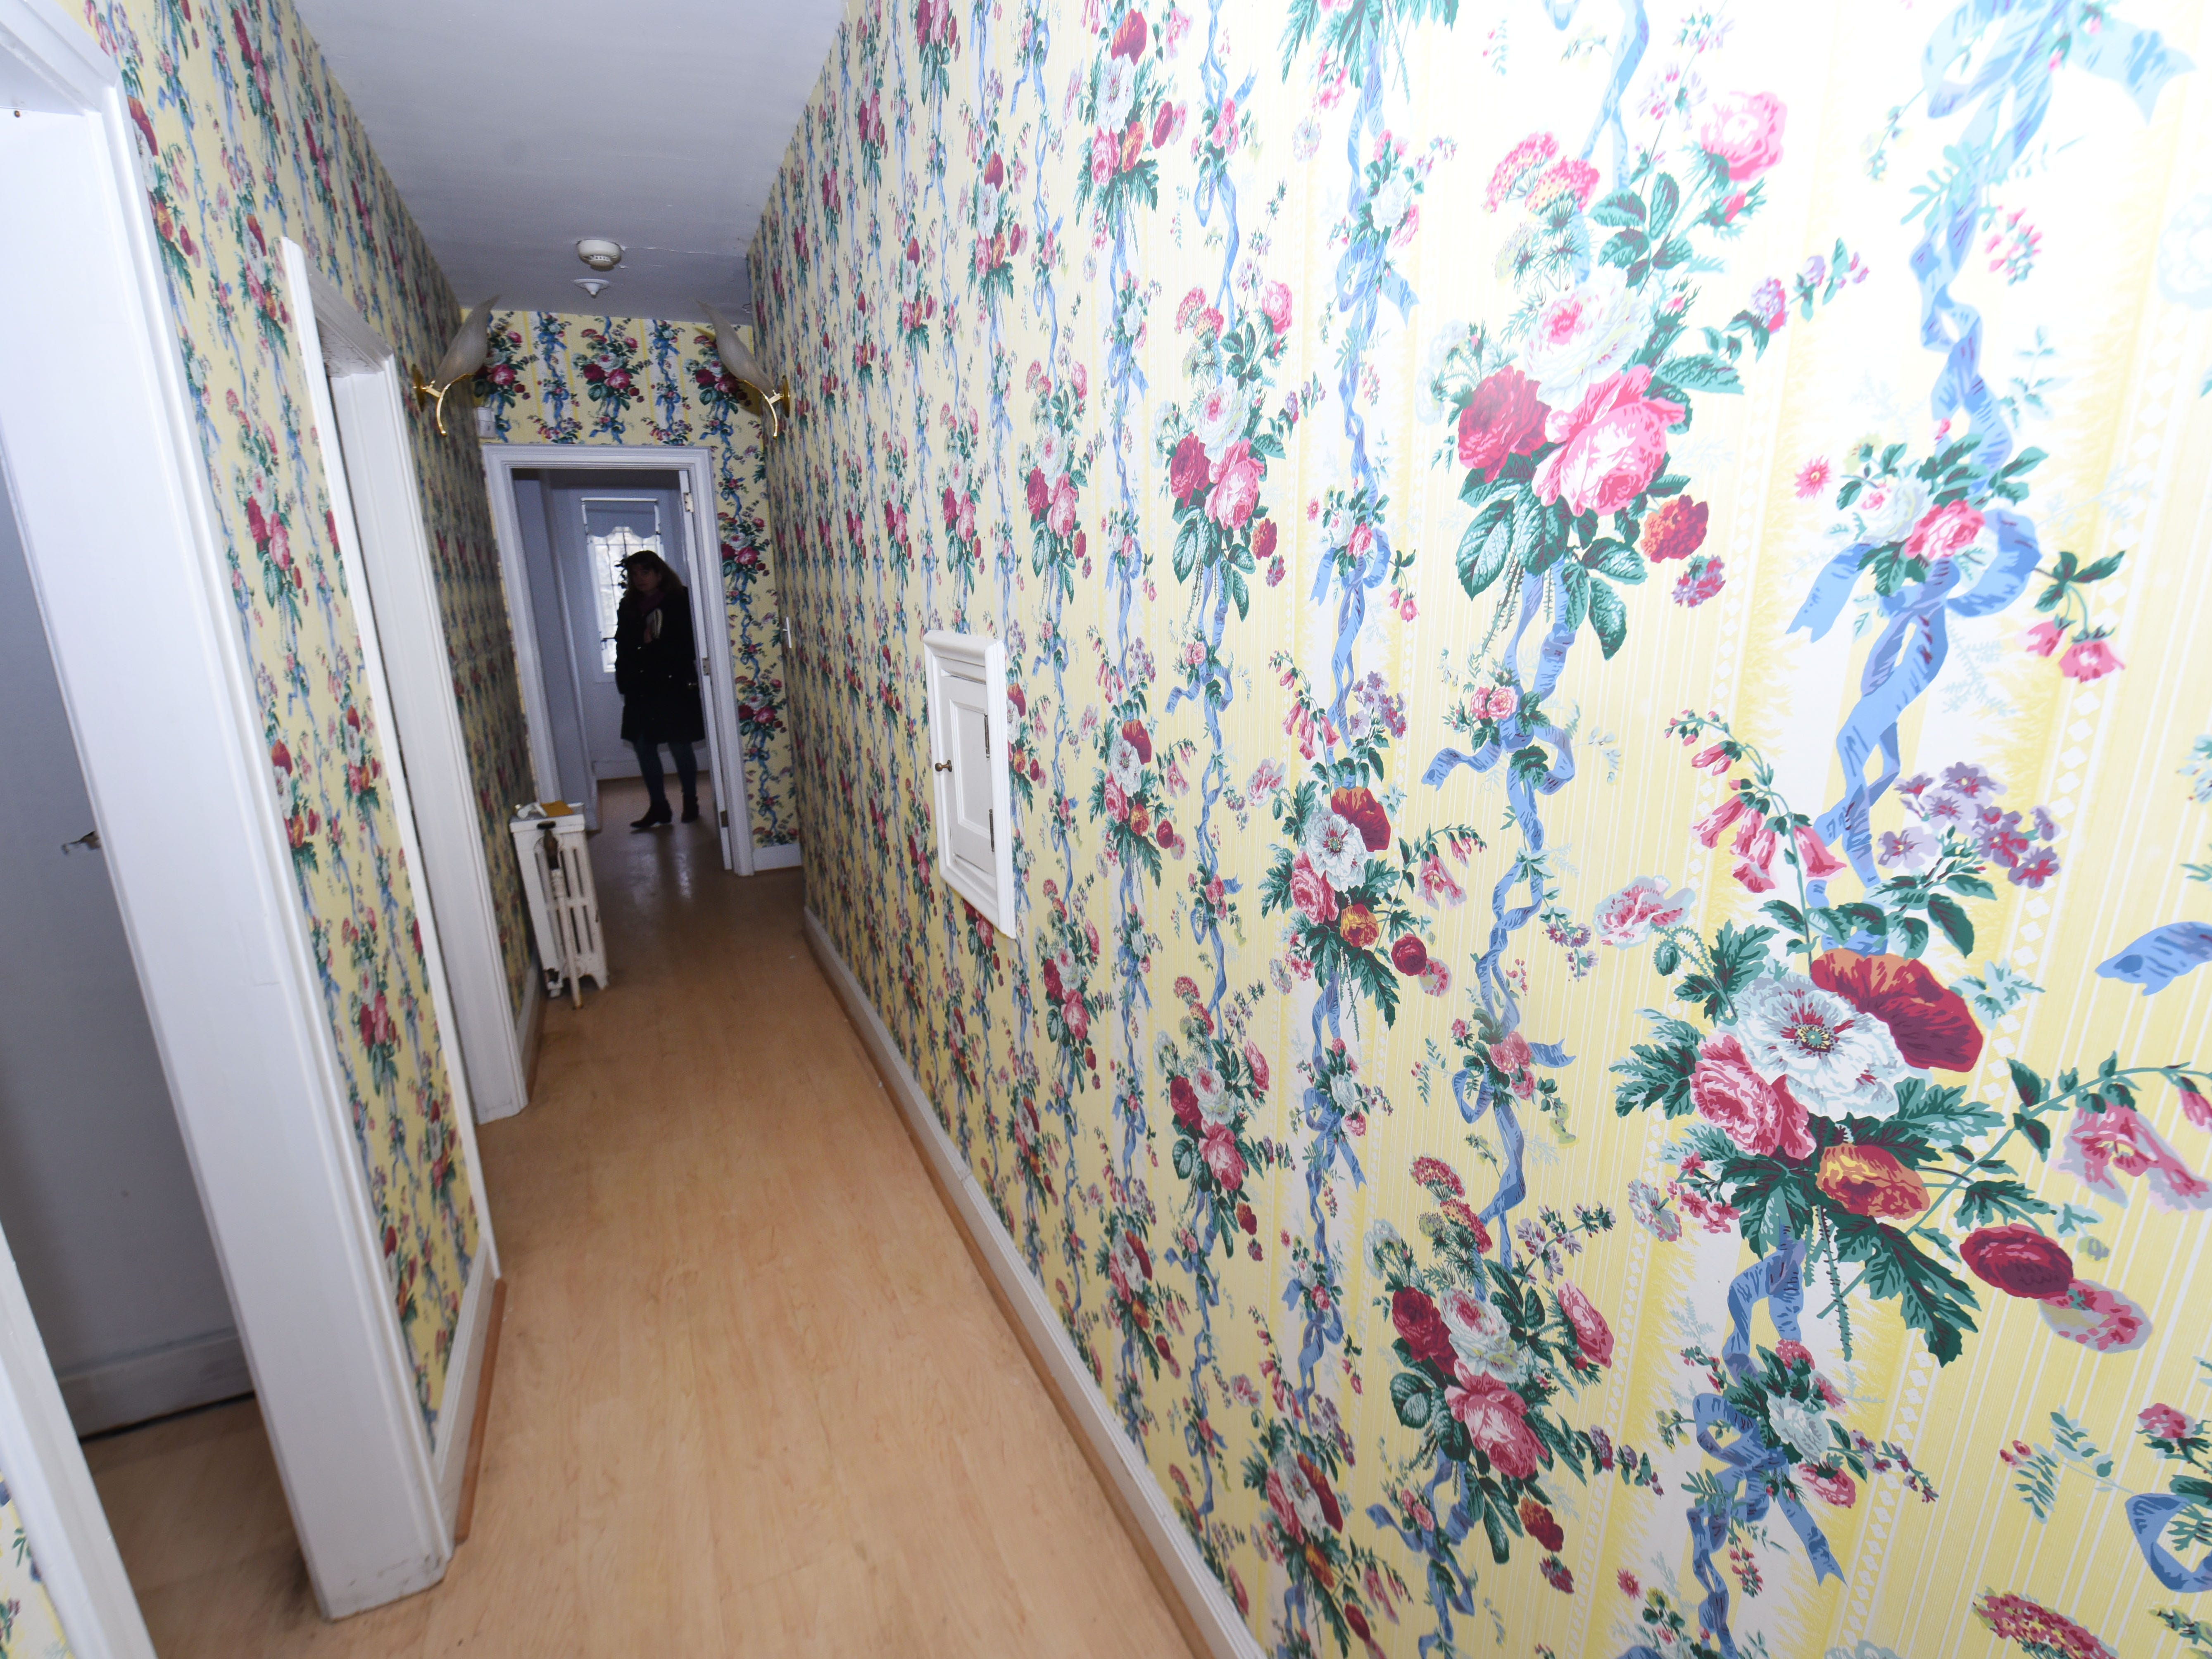 The hallway outside the bedroom of Aretha Franklin is covered in rose wallpaper design.